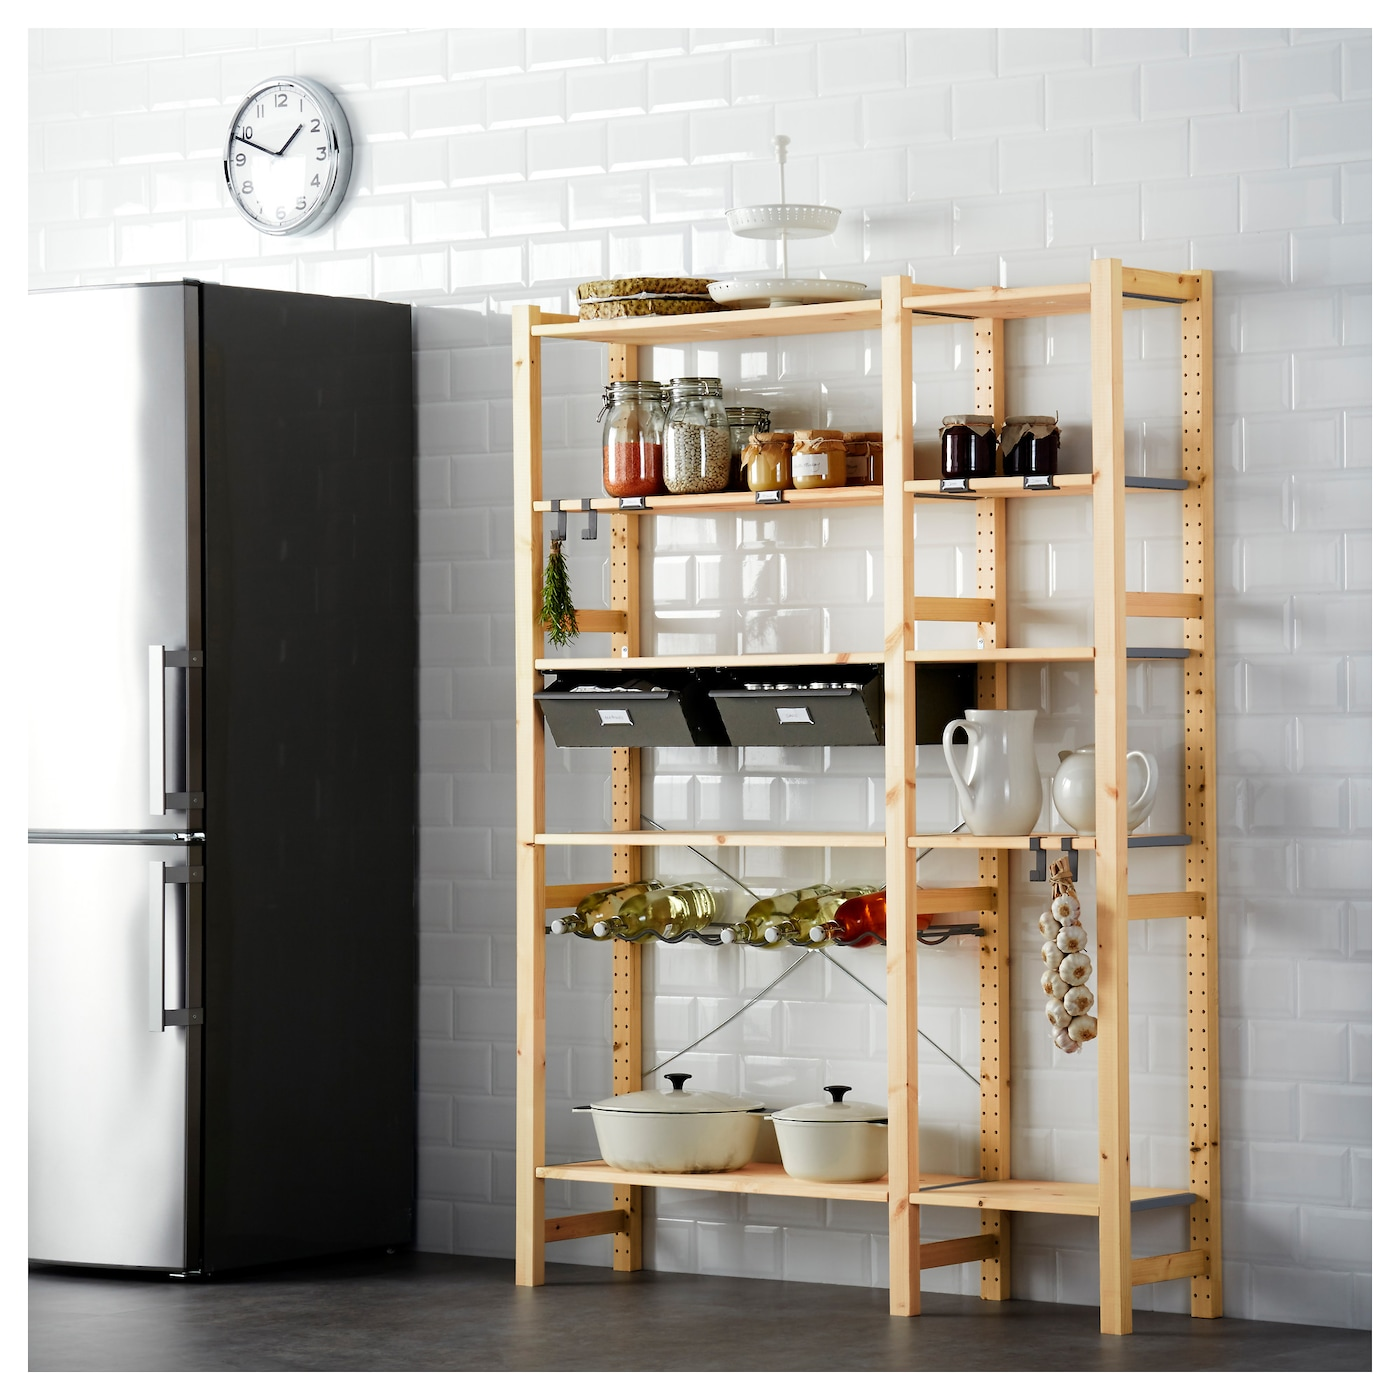 IKEA IVAR 2 sections/shelves/drawers You can move shelves and adapt spacing to suit your needs.